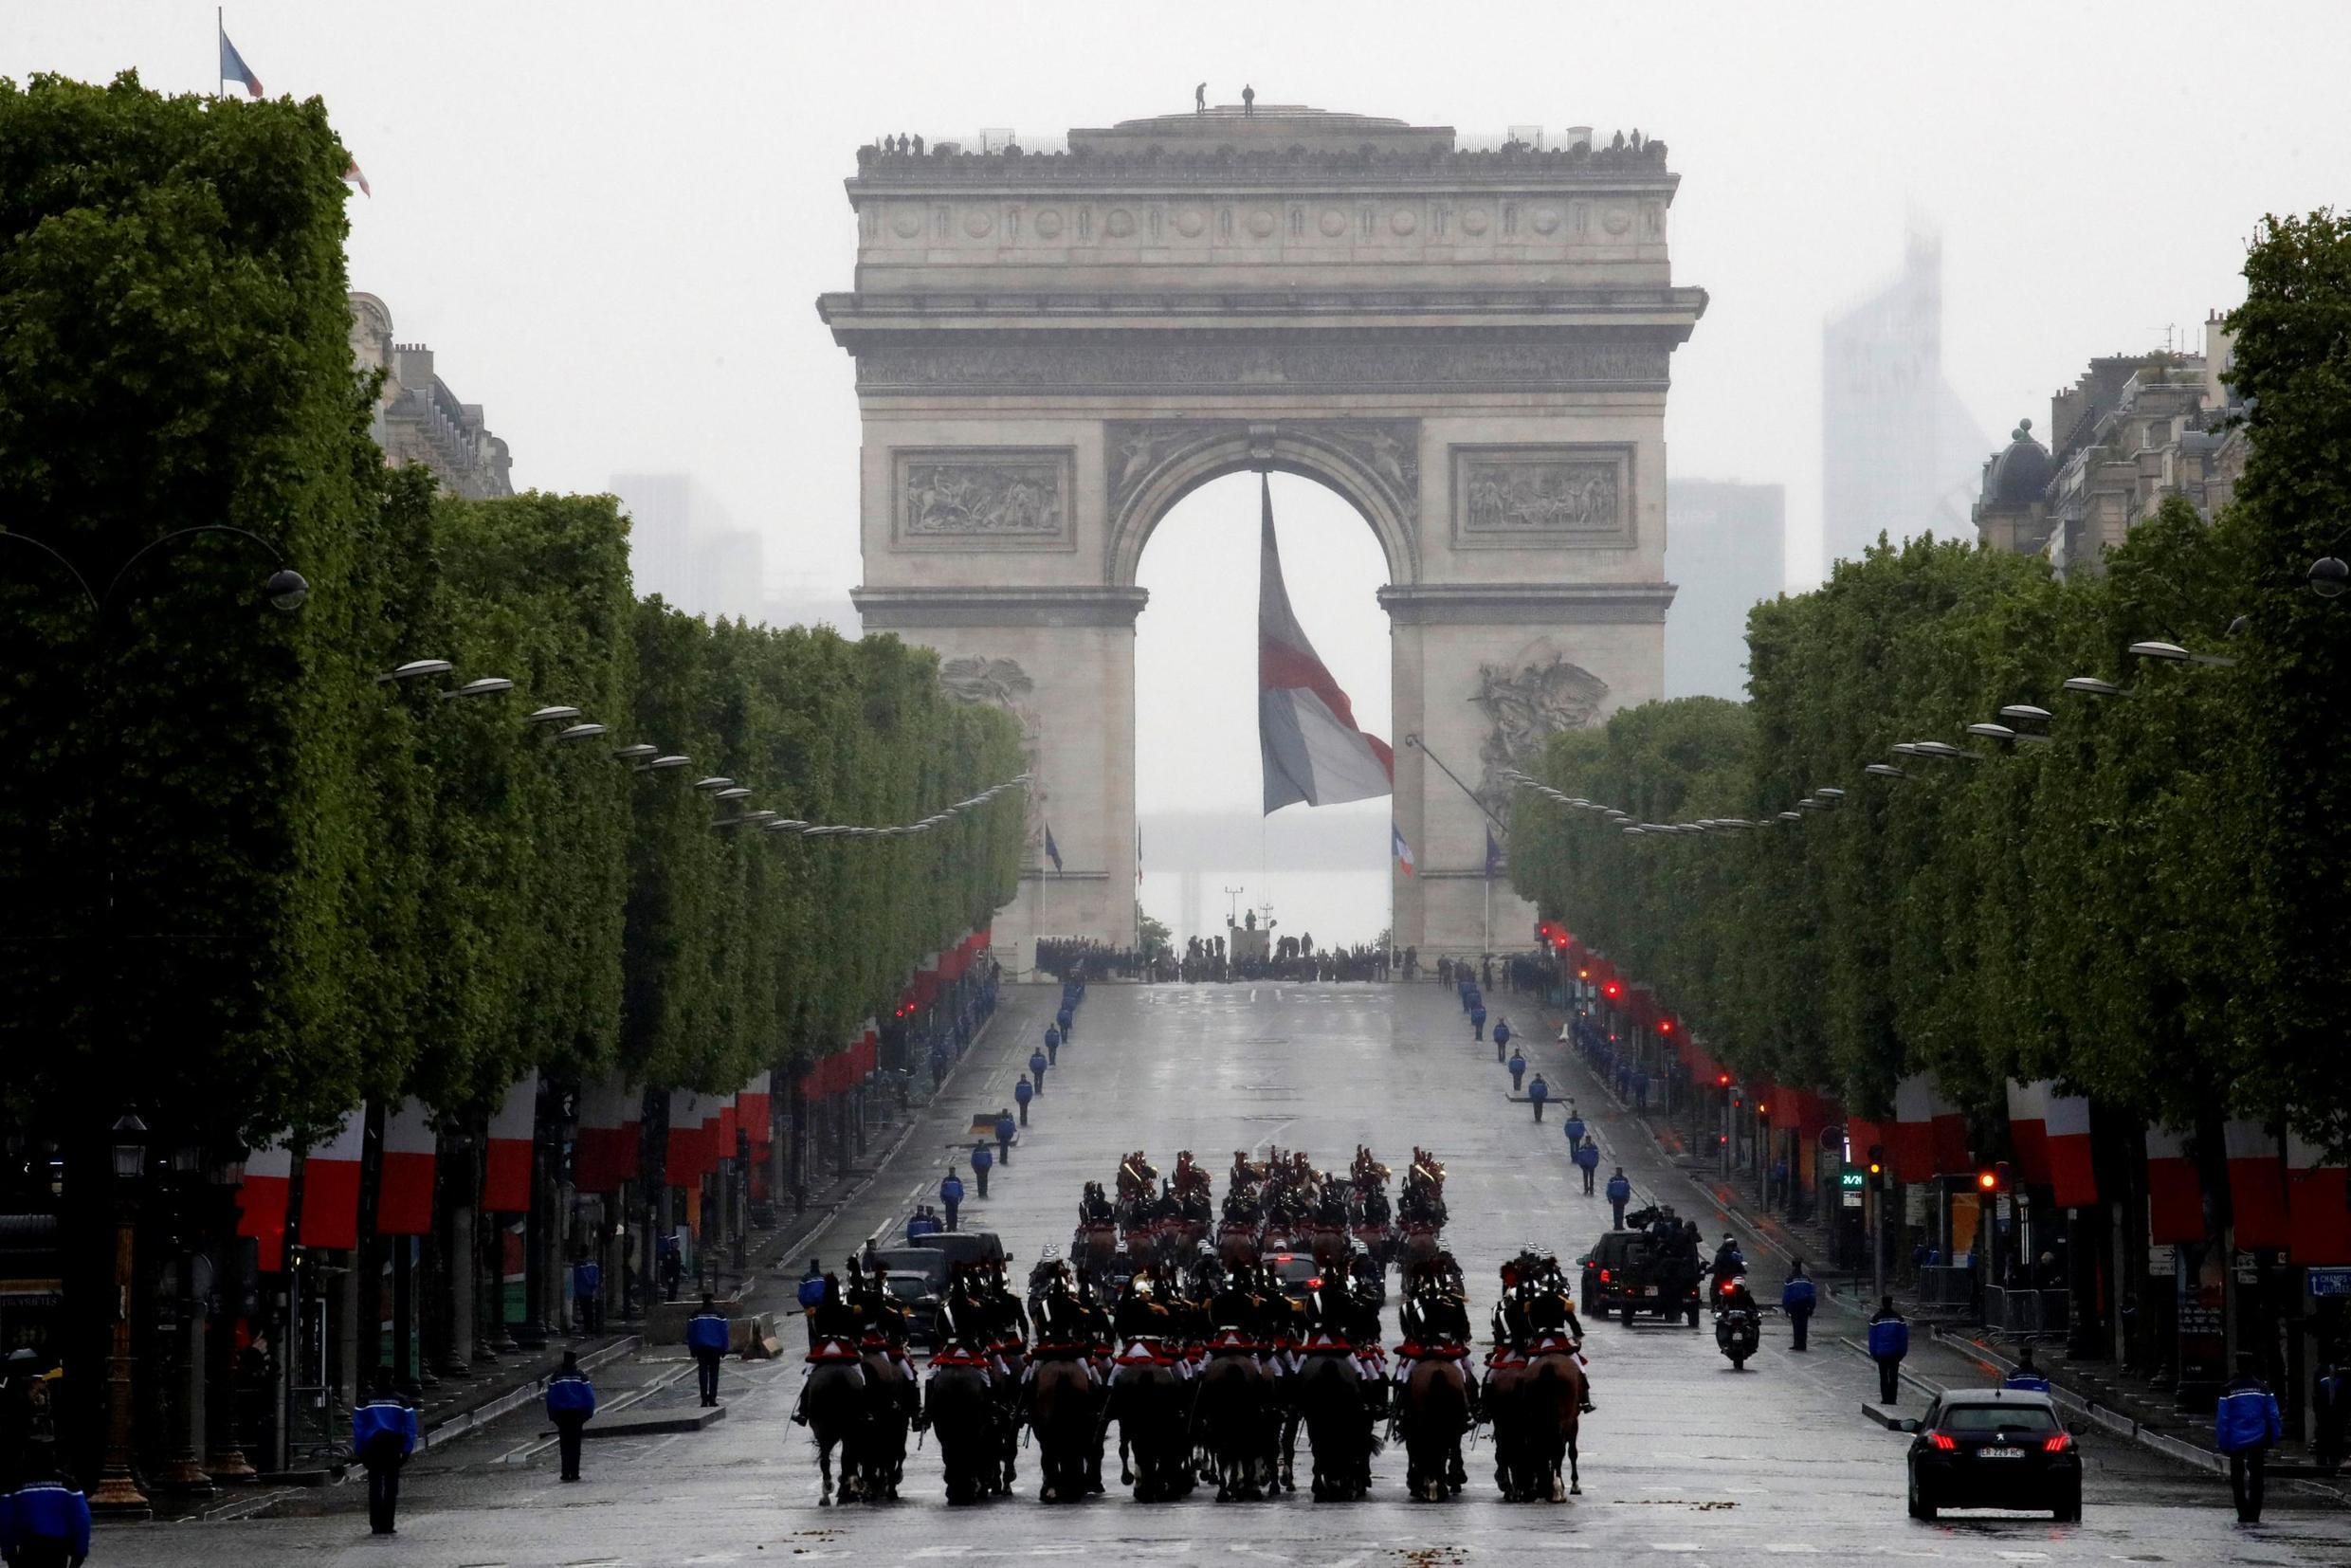 French President Emmanuel Macron's convoy drives up the Champs-Elysées to mark Victory Day at the Arc de Triomphe in Paris.